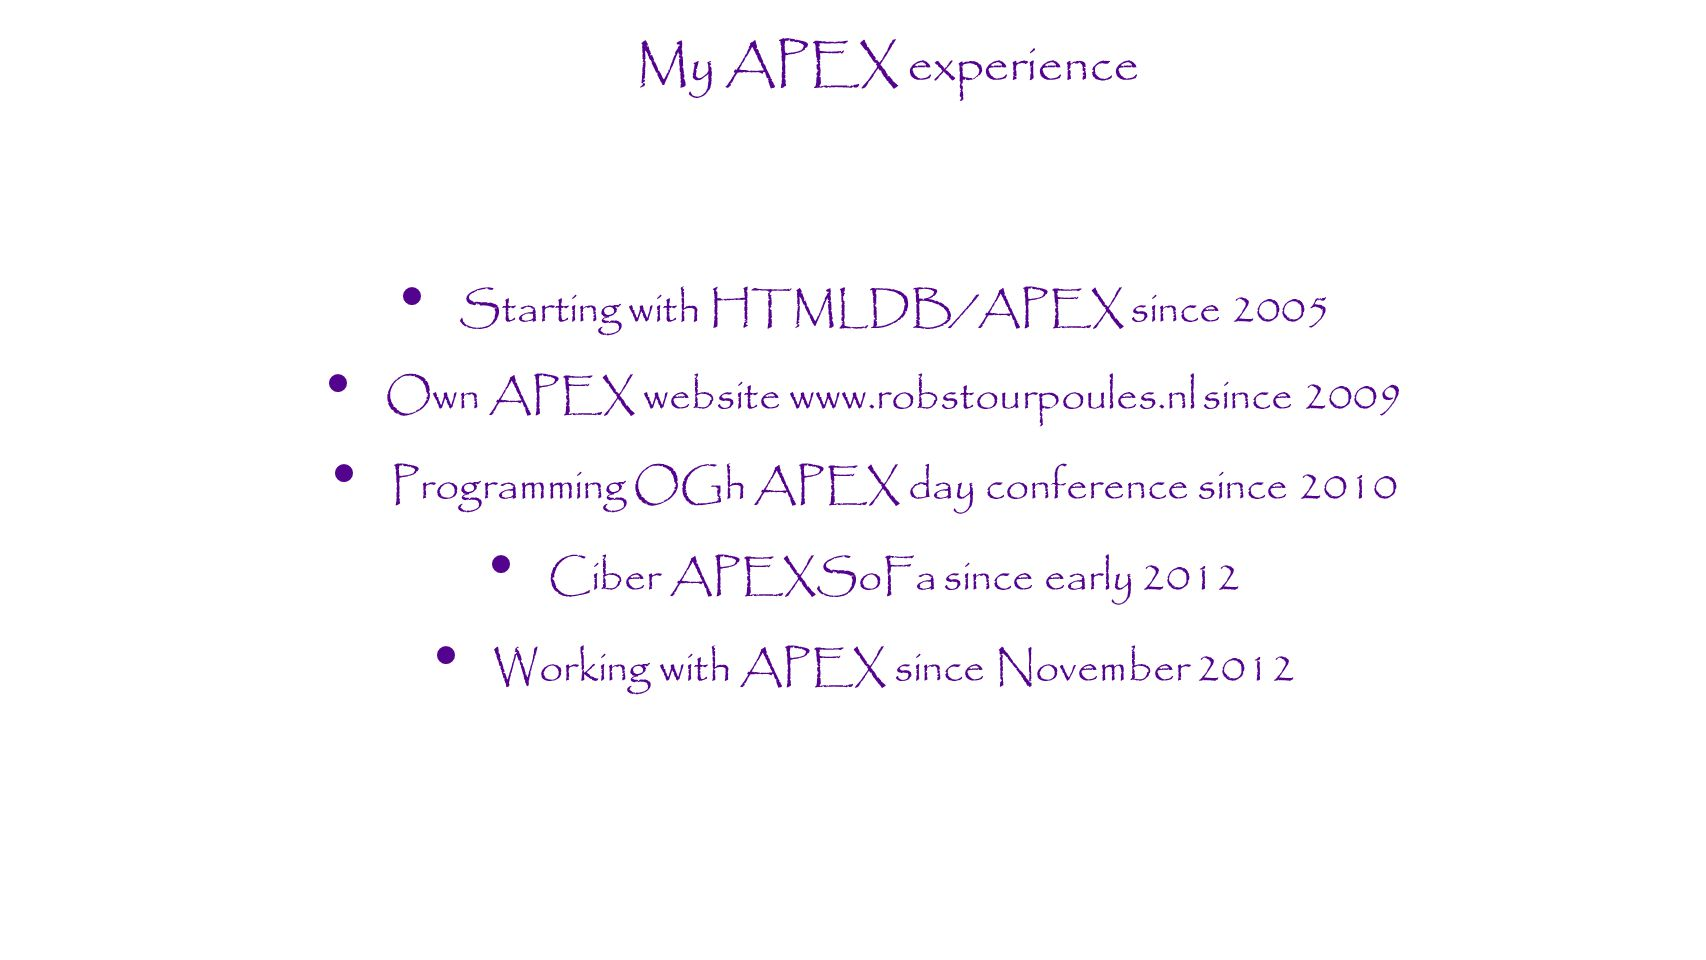 My APEX experience Starting with HTMLDB/APEX since 2005